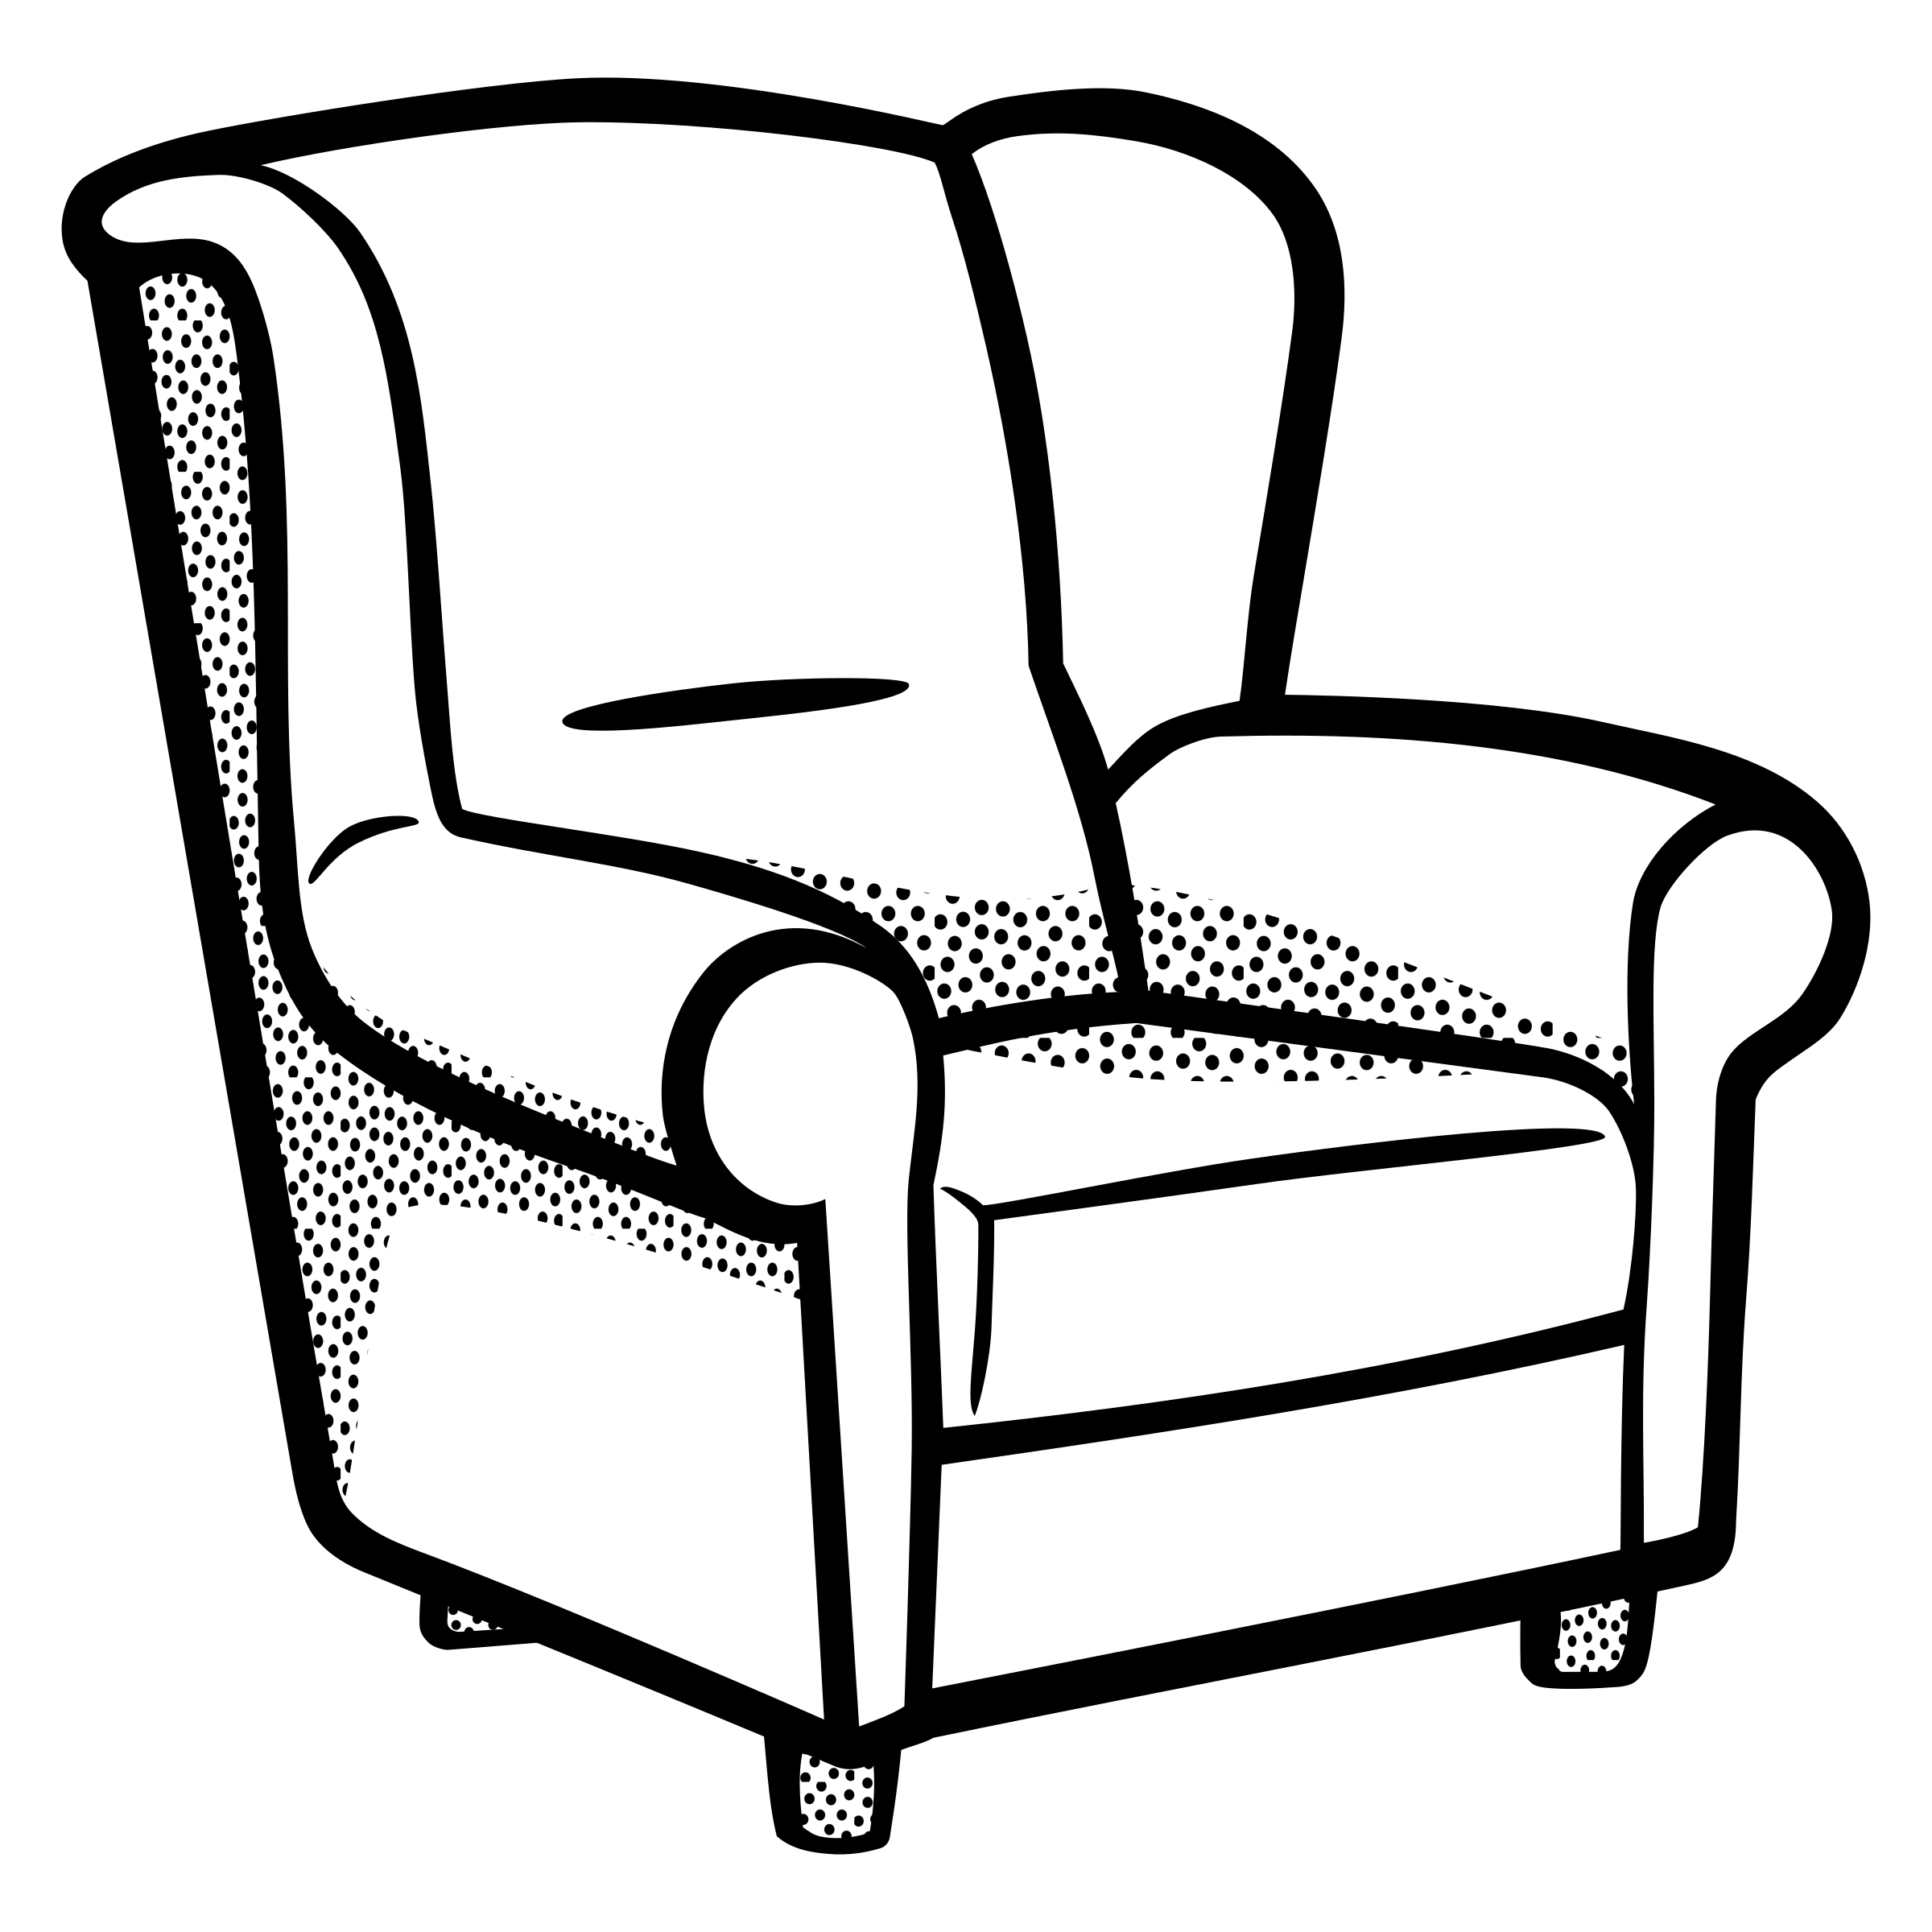 Chair recliner